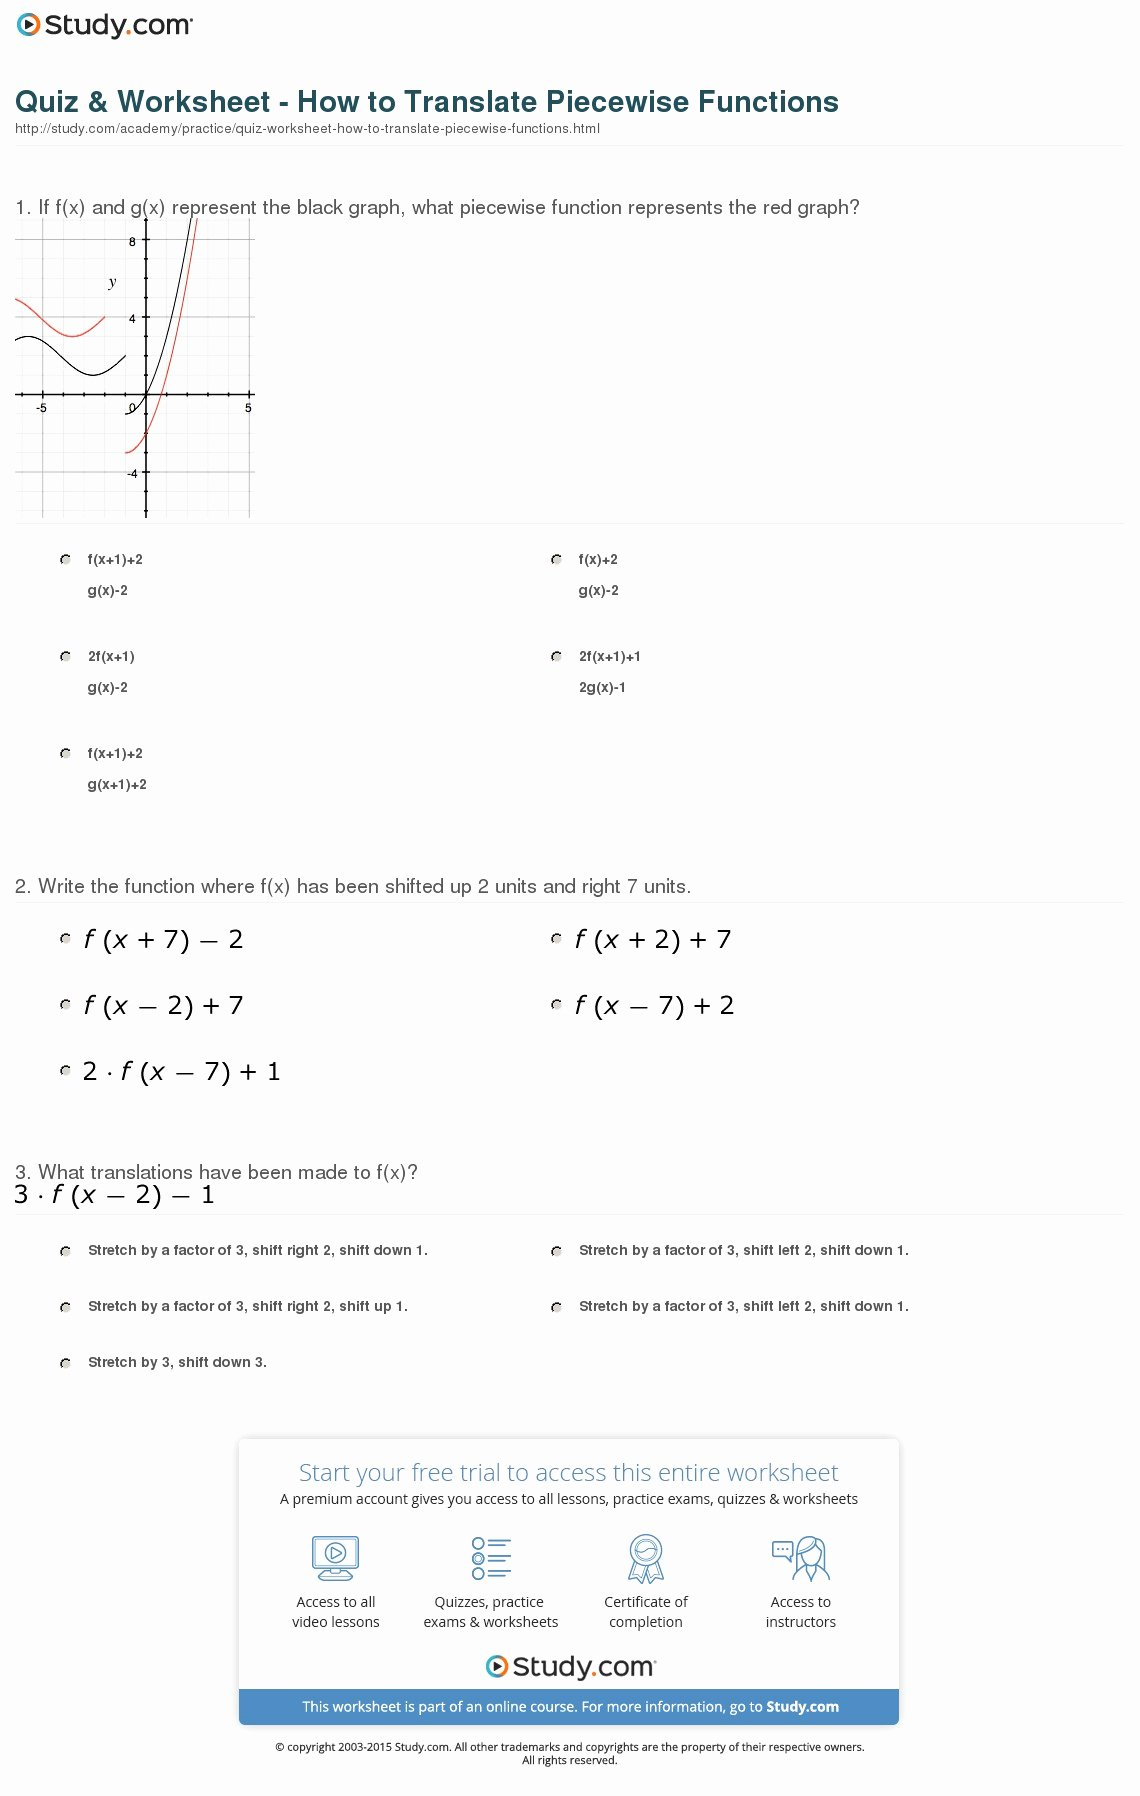 Graphing Piecewise Functions Worksheet New Quiz & Worksheet How to Translate Piecewise Functions